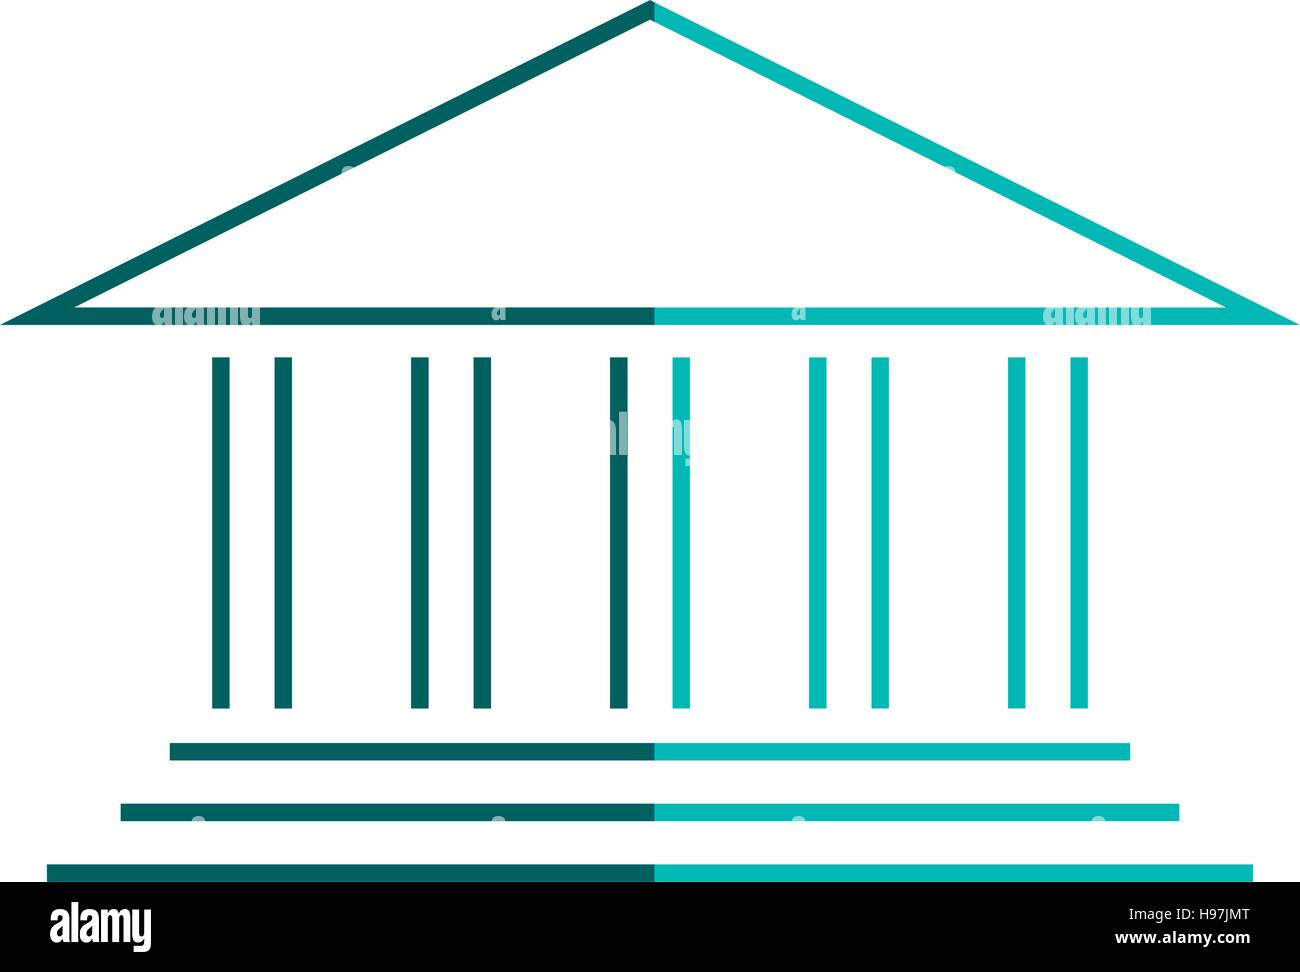 University building symbol stock vector art illustration vector university building symbol biocorpaavc Image collections